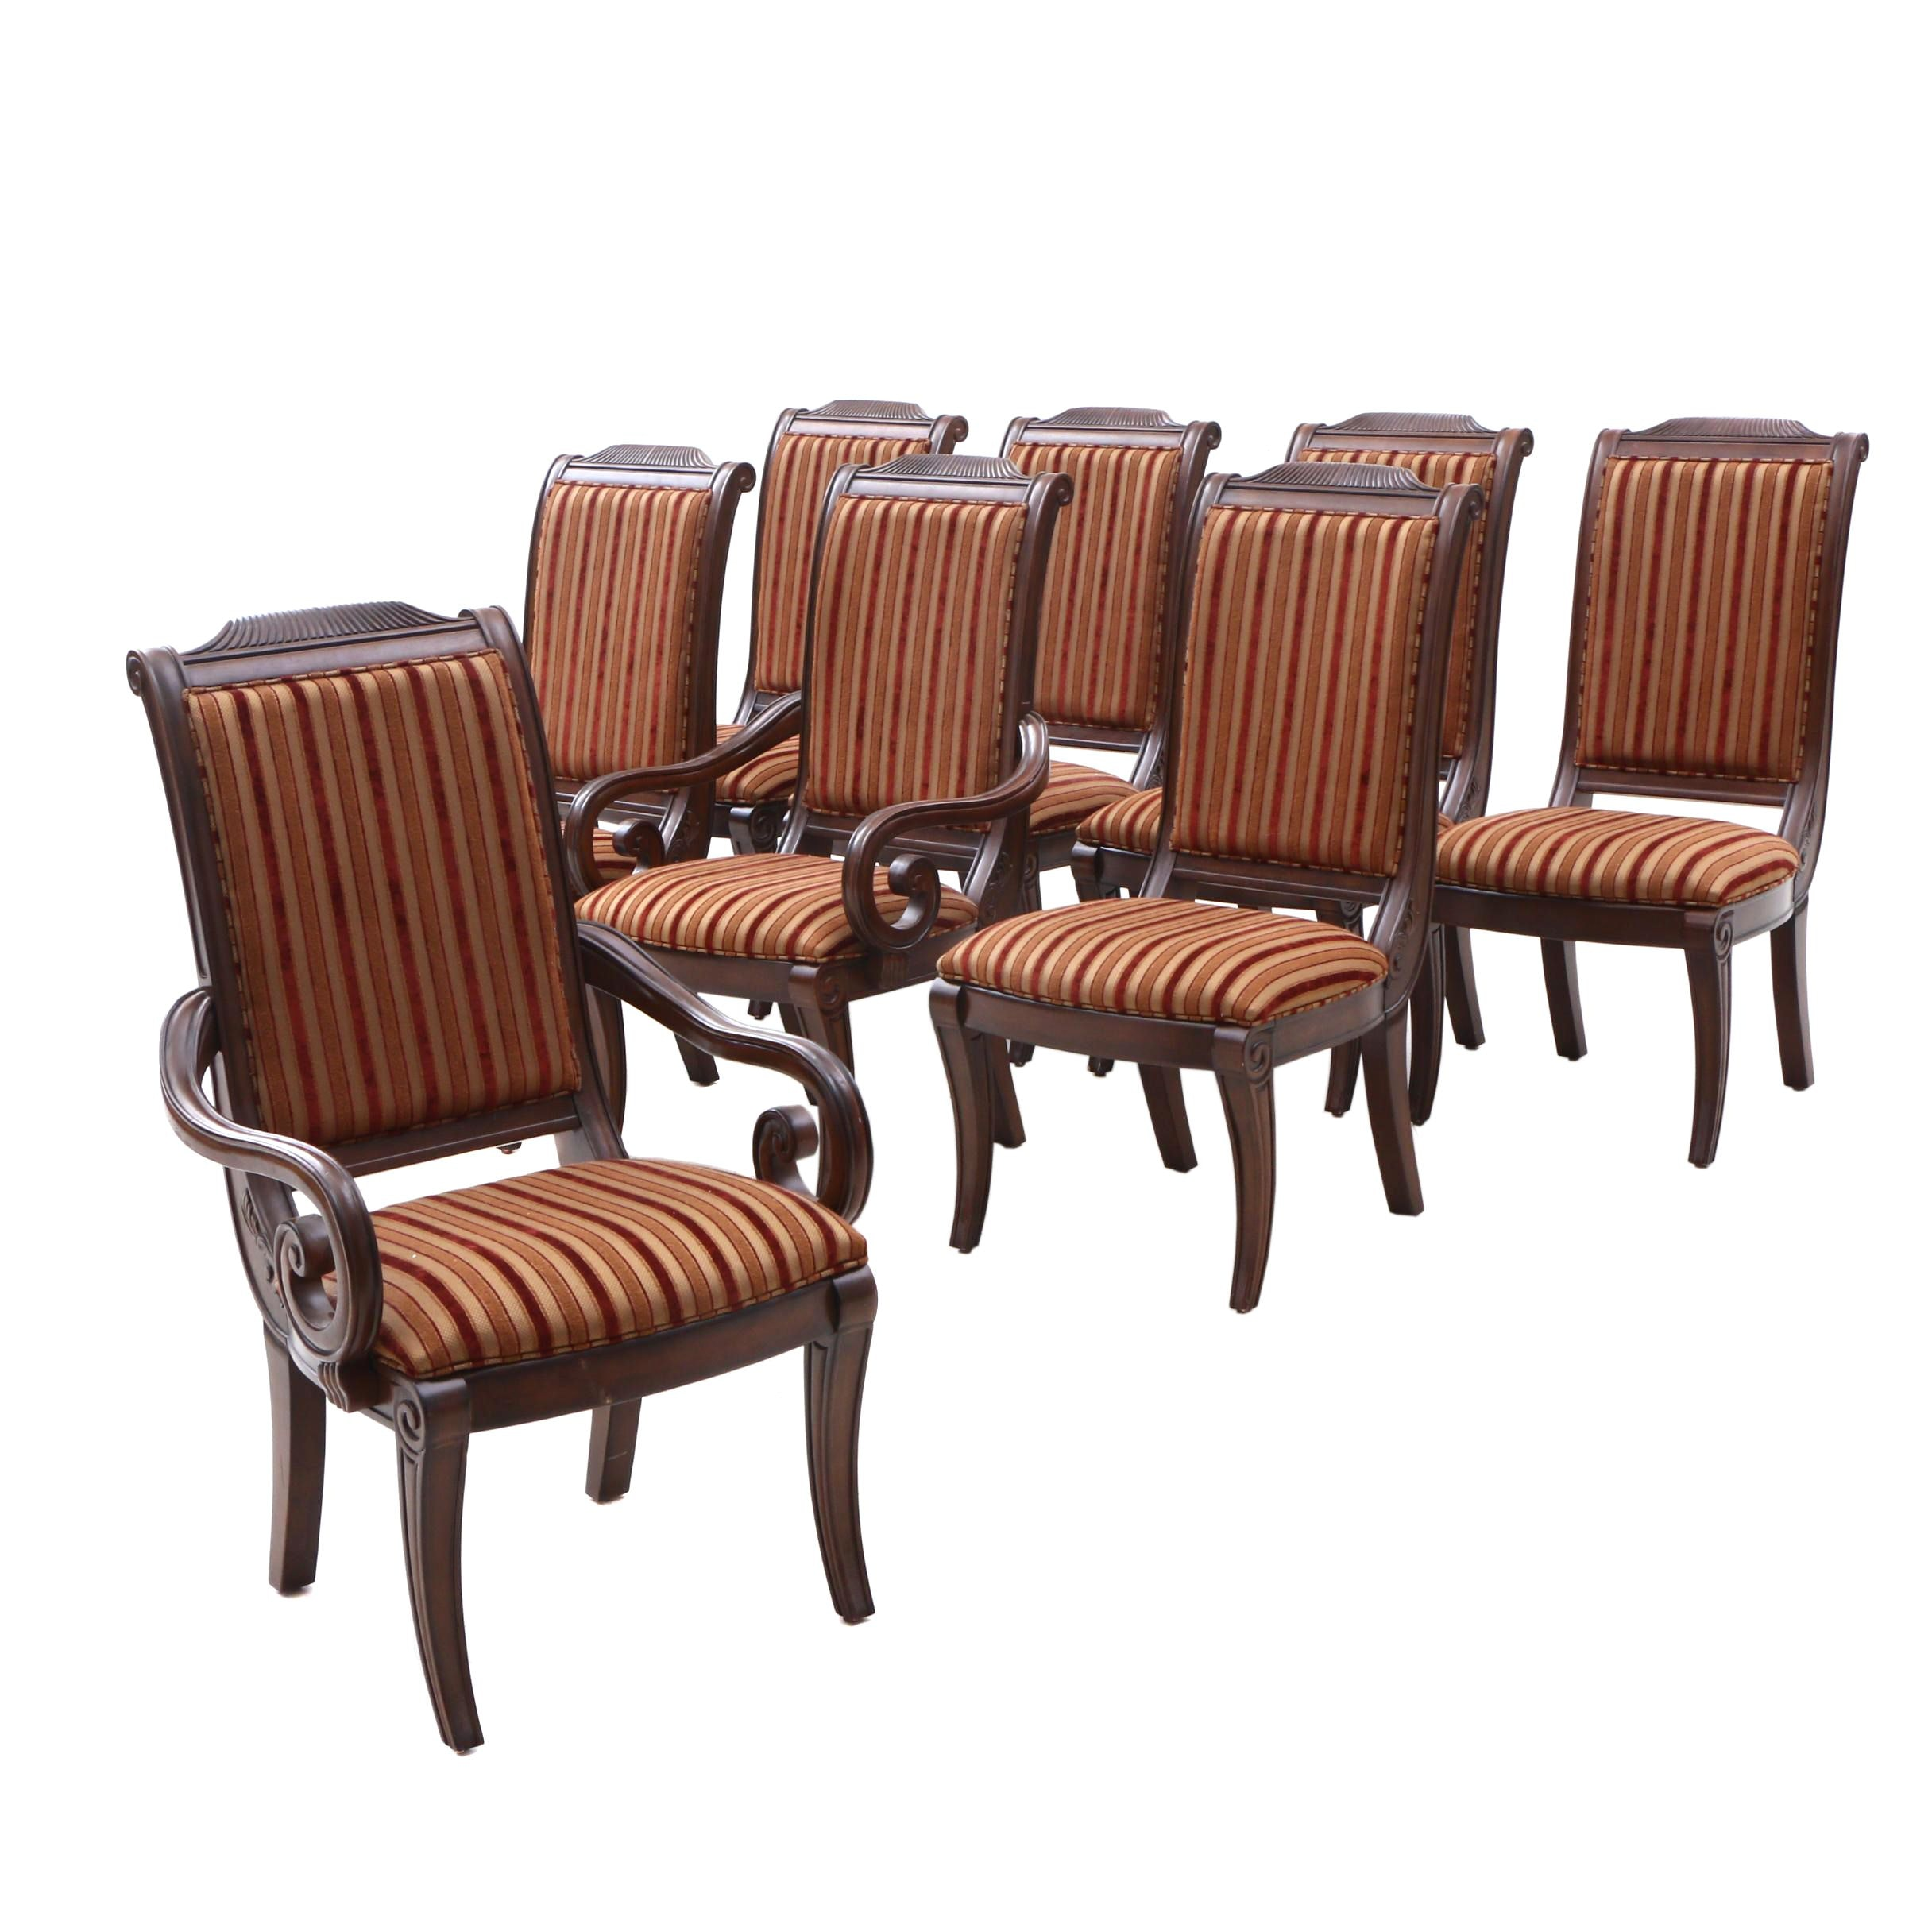 Empire Style Walnut Dining Chairs by Bernhardt Furniture